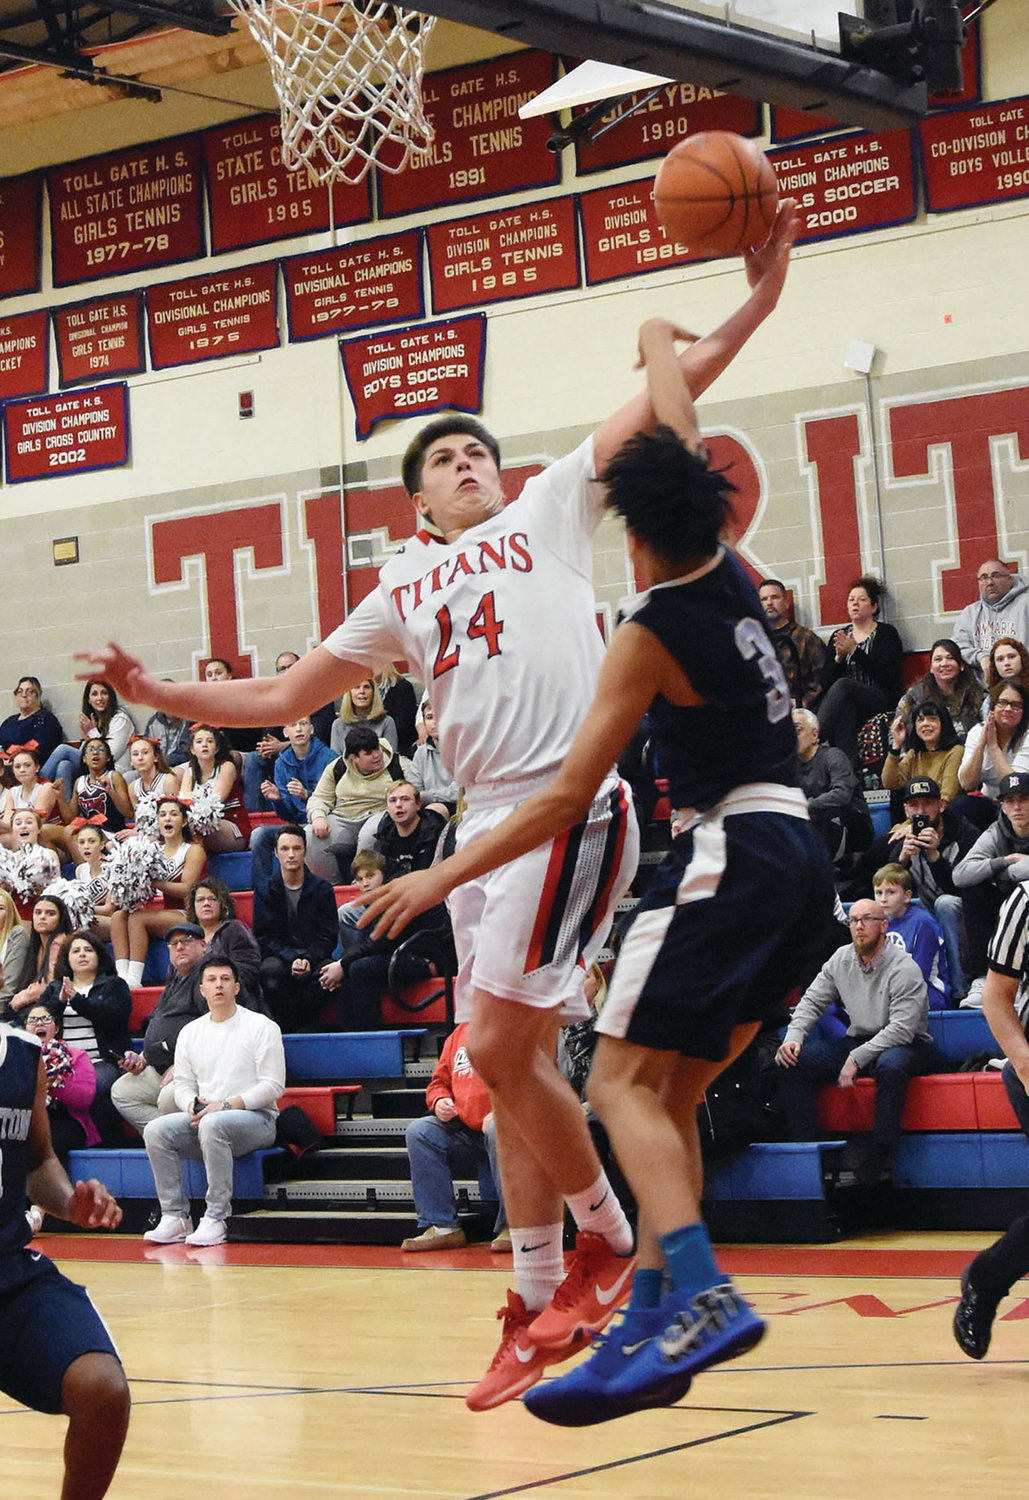 REACHING A MILESTONE: Toll Gate's Brandon Scott puts up a shot over a Johnston defender on Tuesday evening at Toll Gate. Scott, a senior, sank a 3-pointer to hit and surpass 1,000 career points for the Titans.